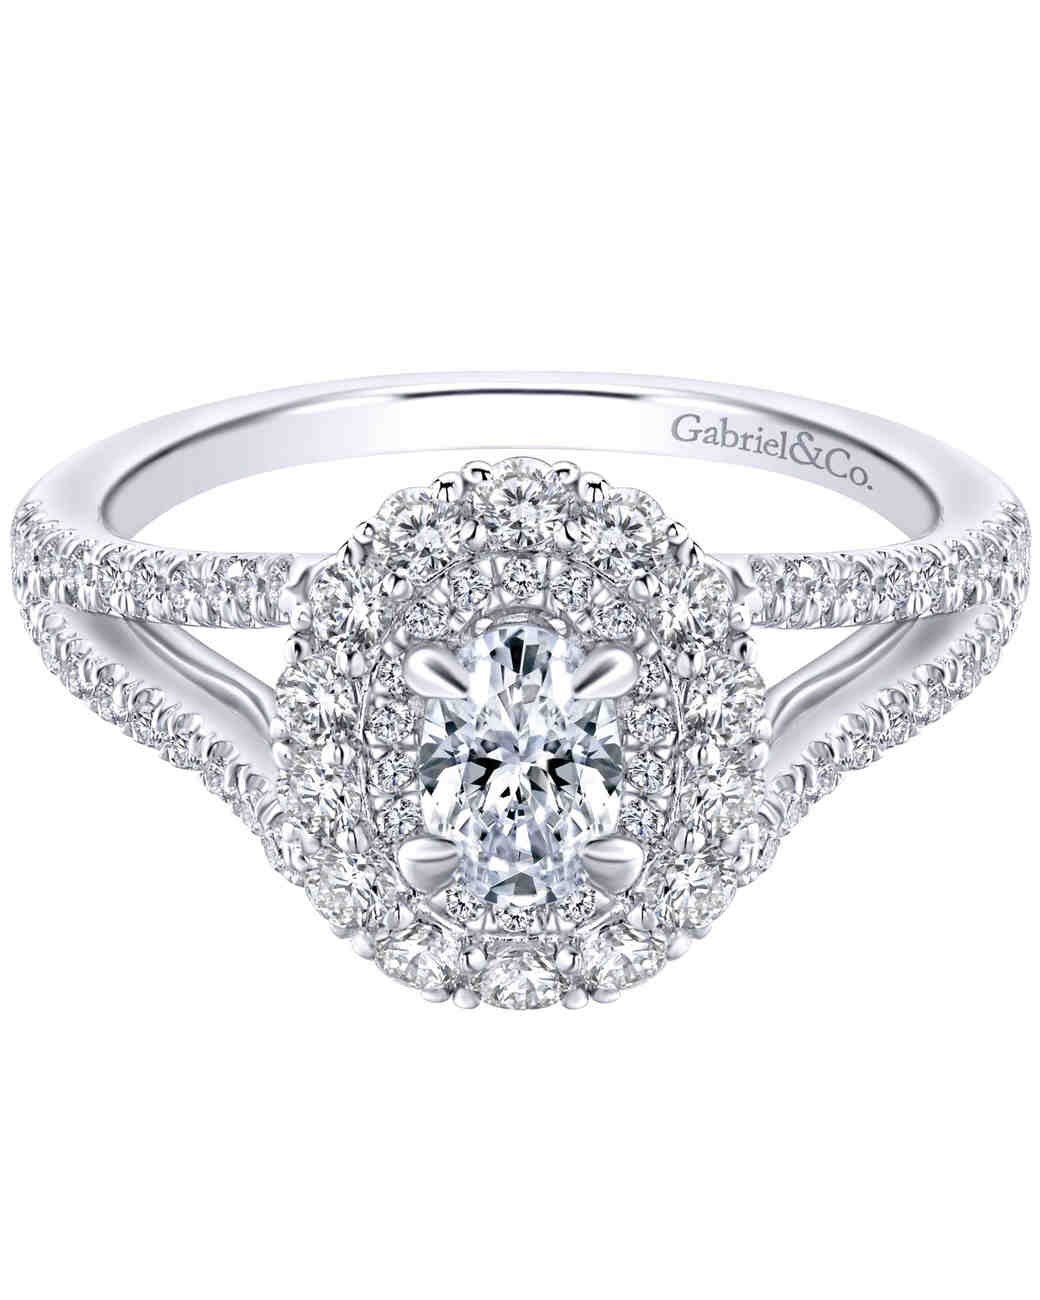 Oval Engagement Rings For The Bride To Be